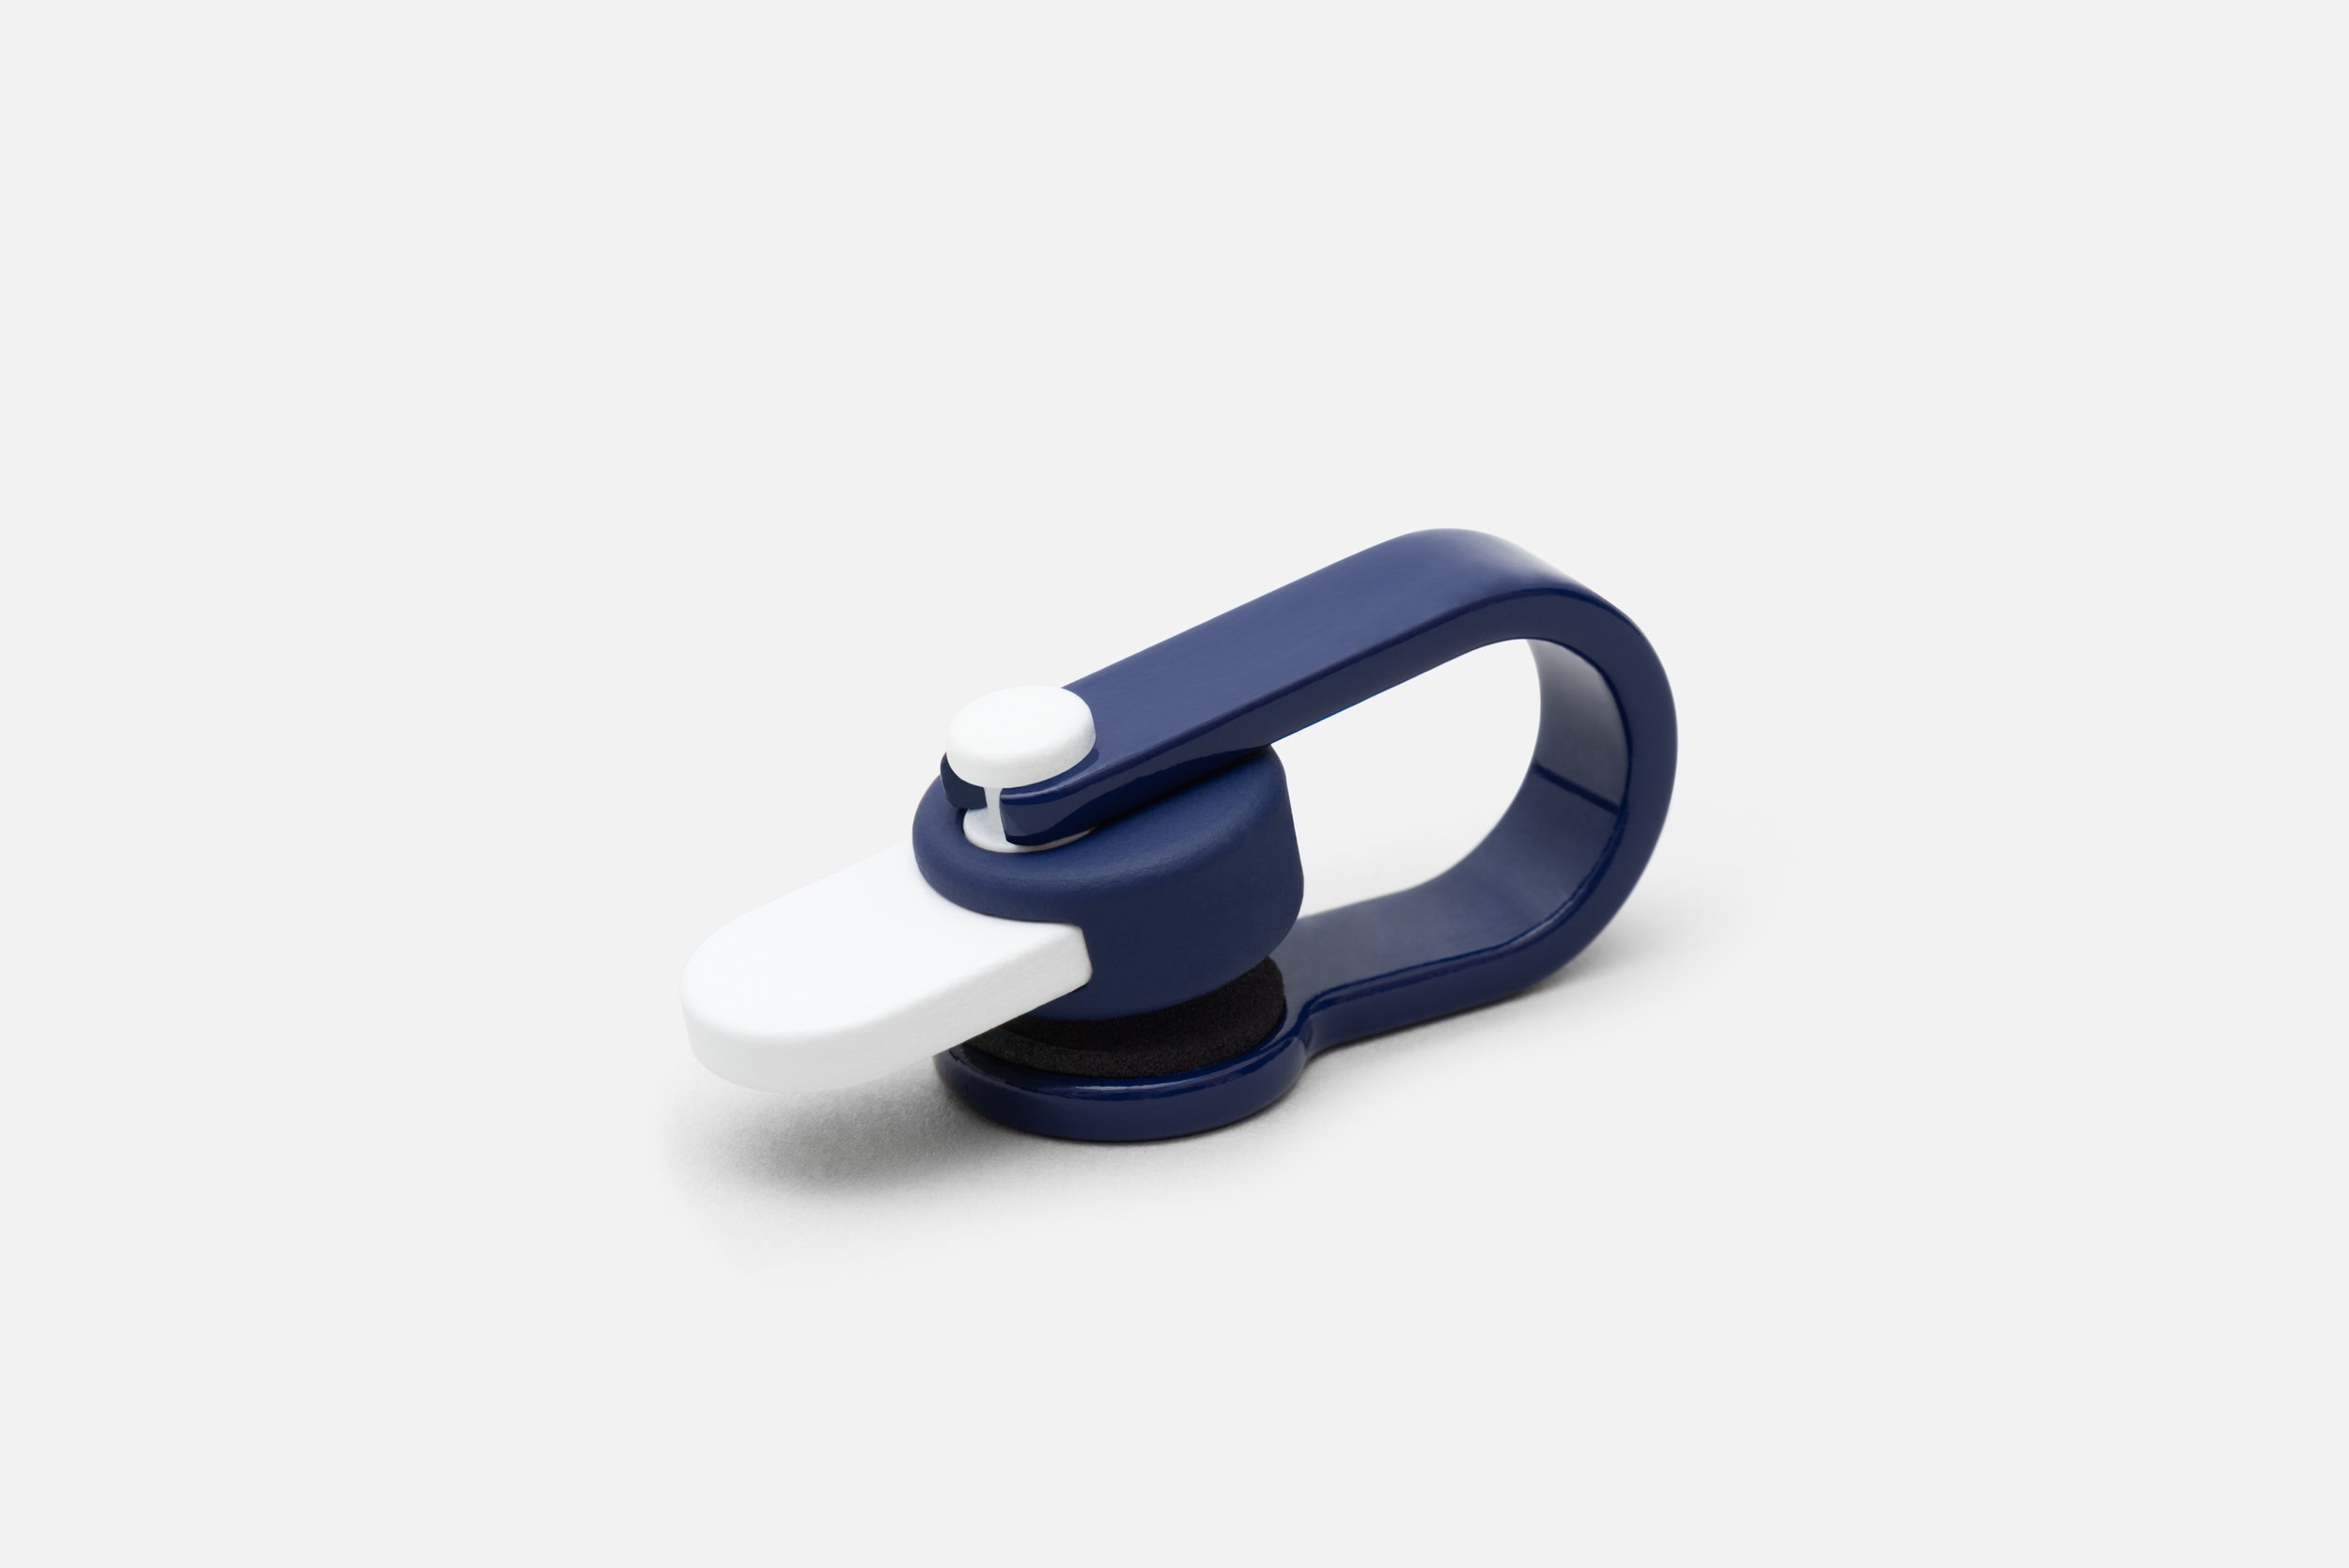 YARA-CLIP-PRODUCT-by-THOMAS-WIUF-SCHWARTZ-124.jpg